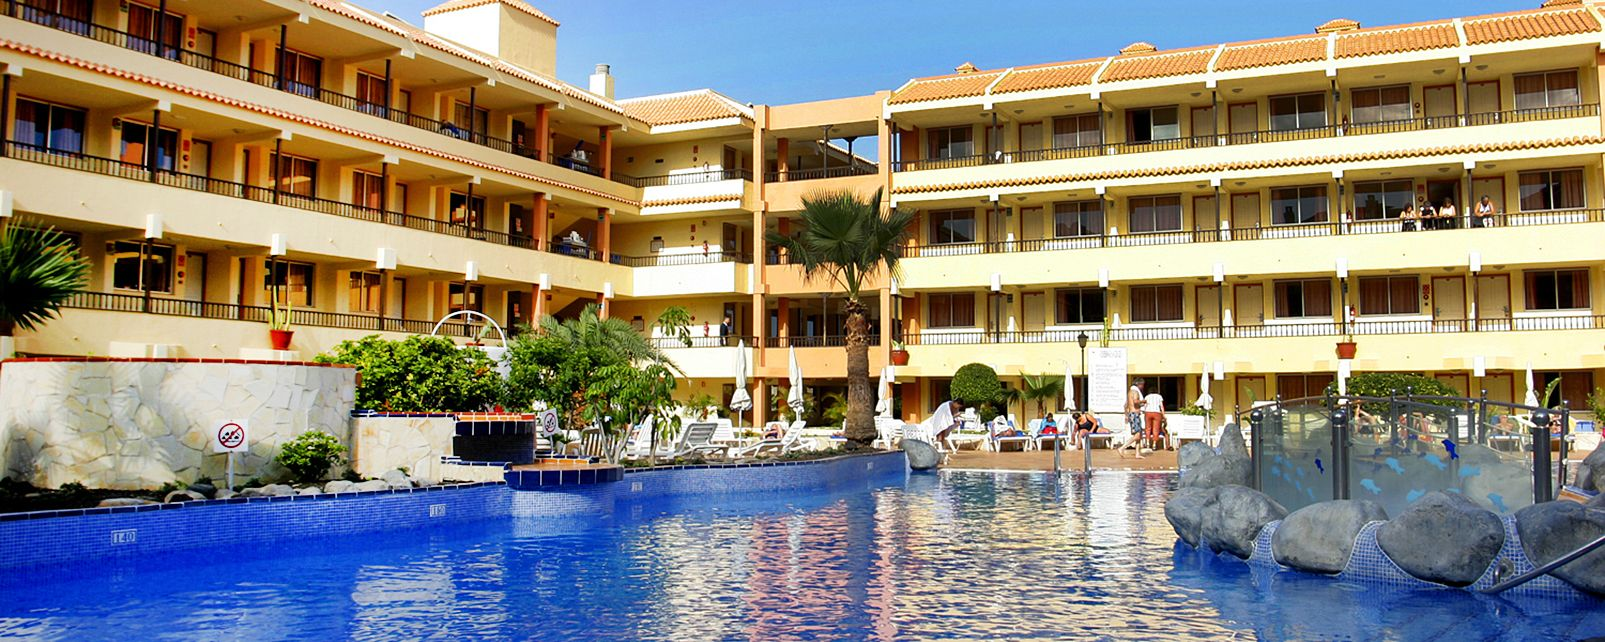 Hotel hovima jardin caleta in costa adeje spain for Costa jardin